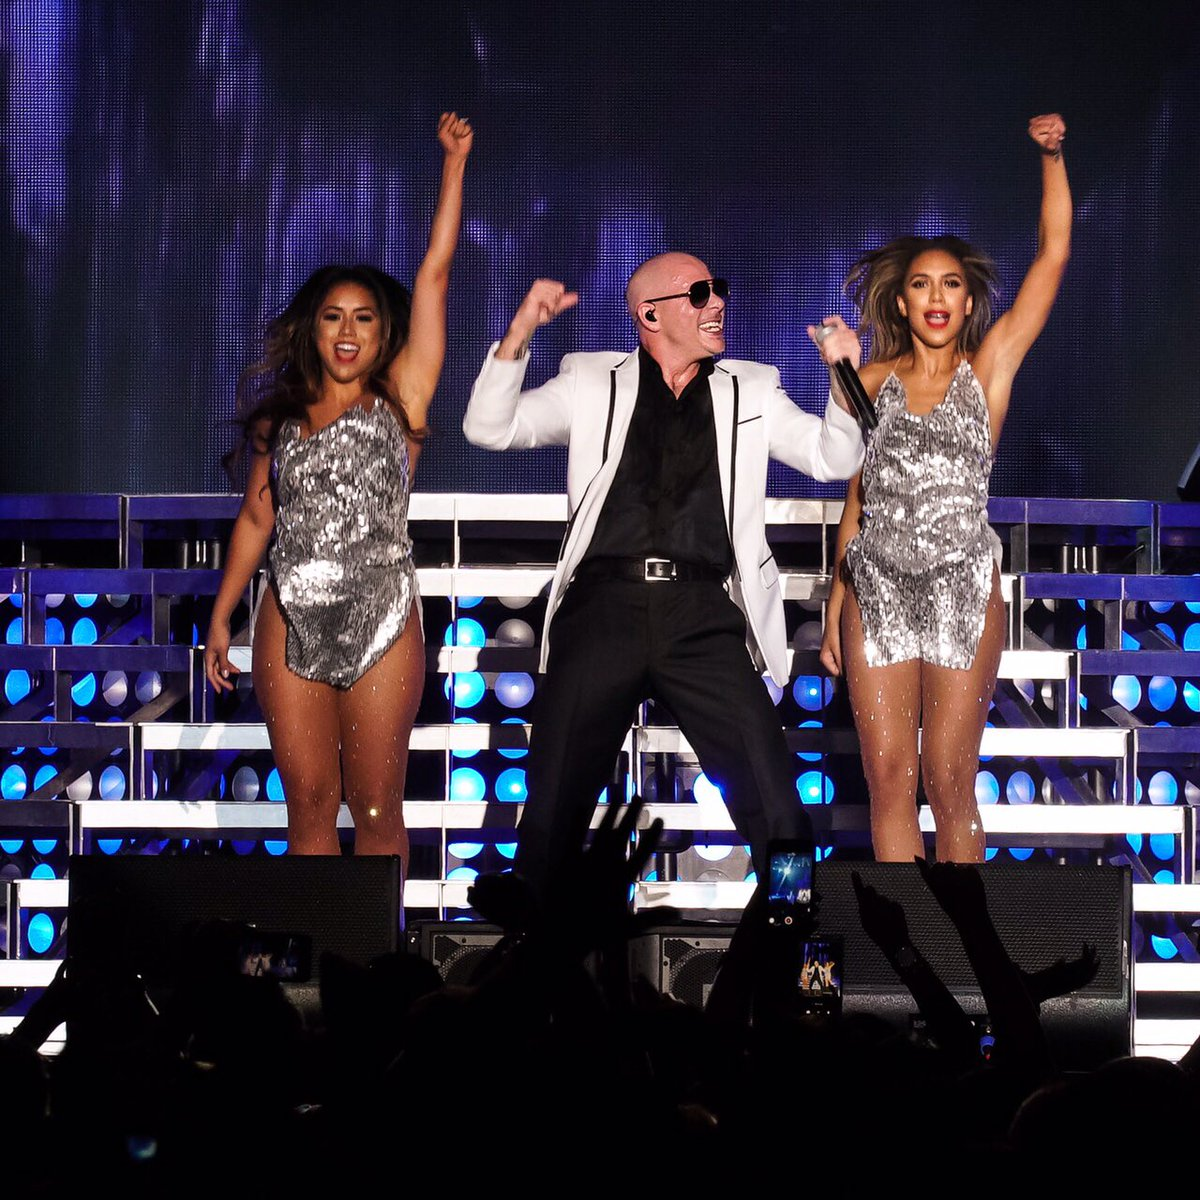 All my bad ones head to the Bay. #BadManTour @PrinceRoyce @FarrukoPR will be at @ShorelineAmp @LiveNation #Dale https://t.co/h7NSxivezZ